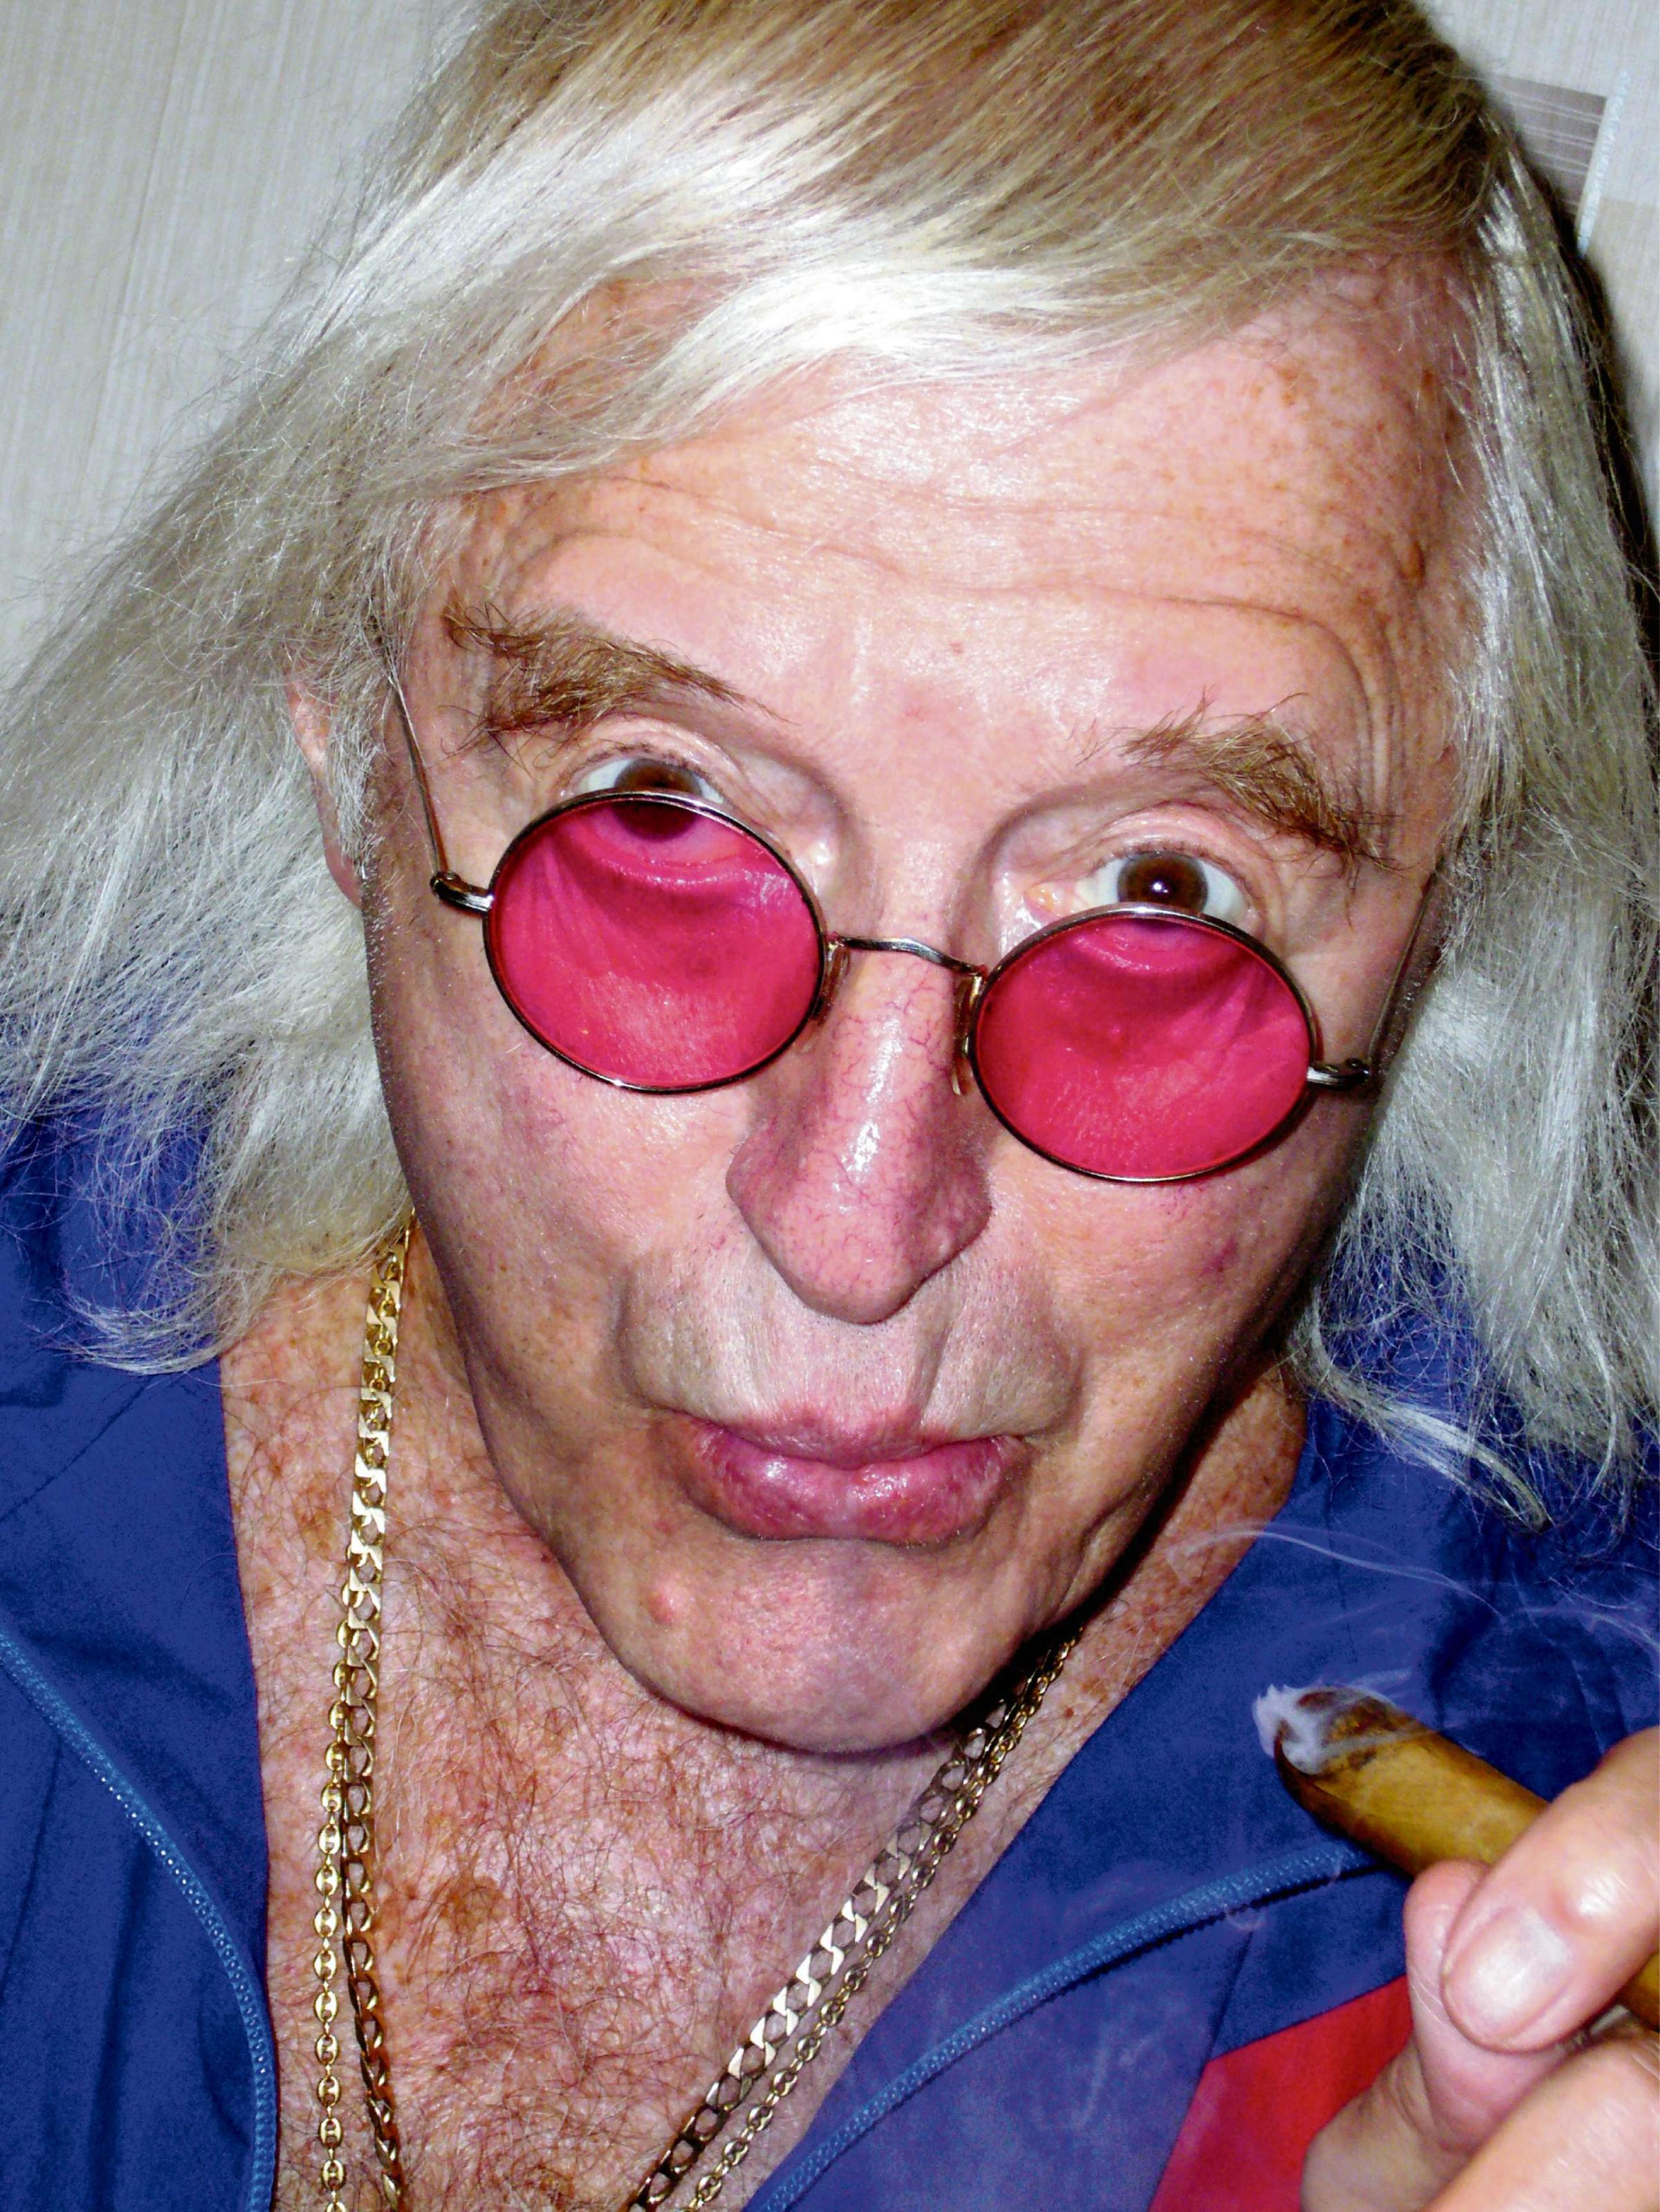 Savile 'groped women' at  High Royds Hospital, report reveals